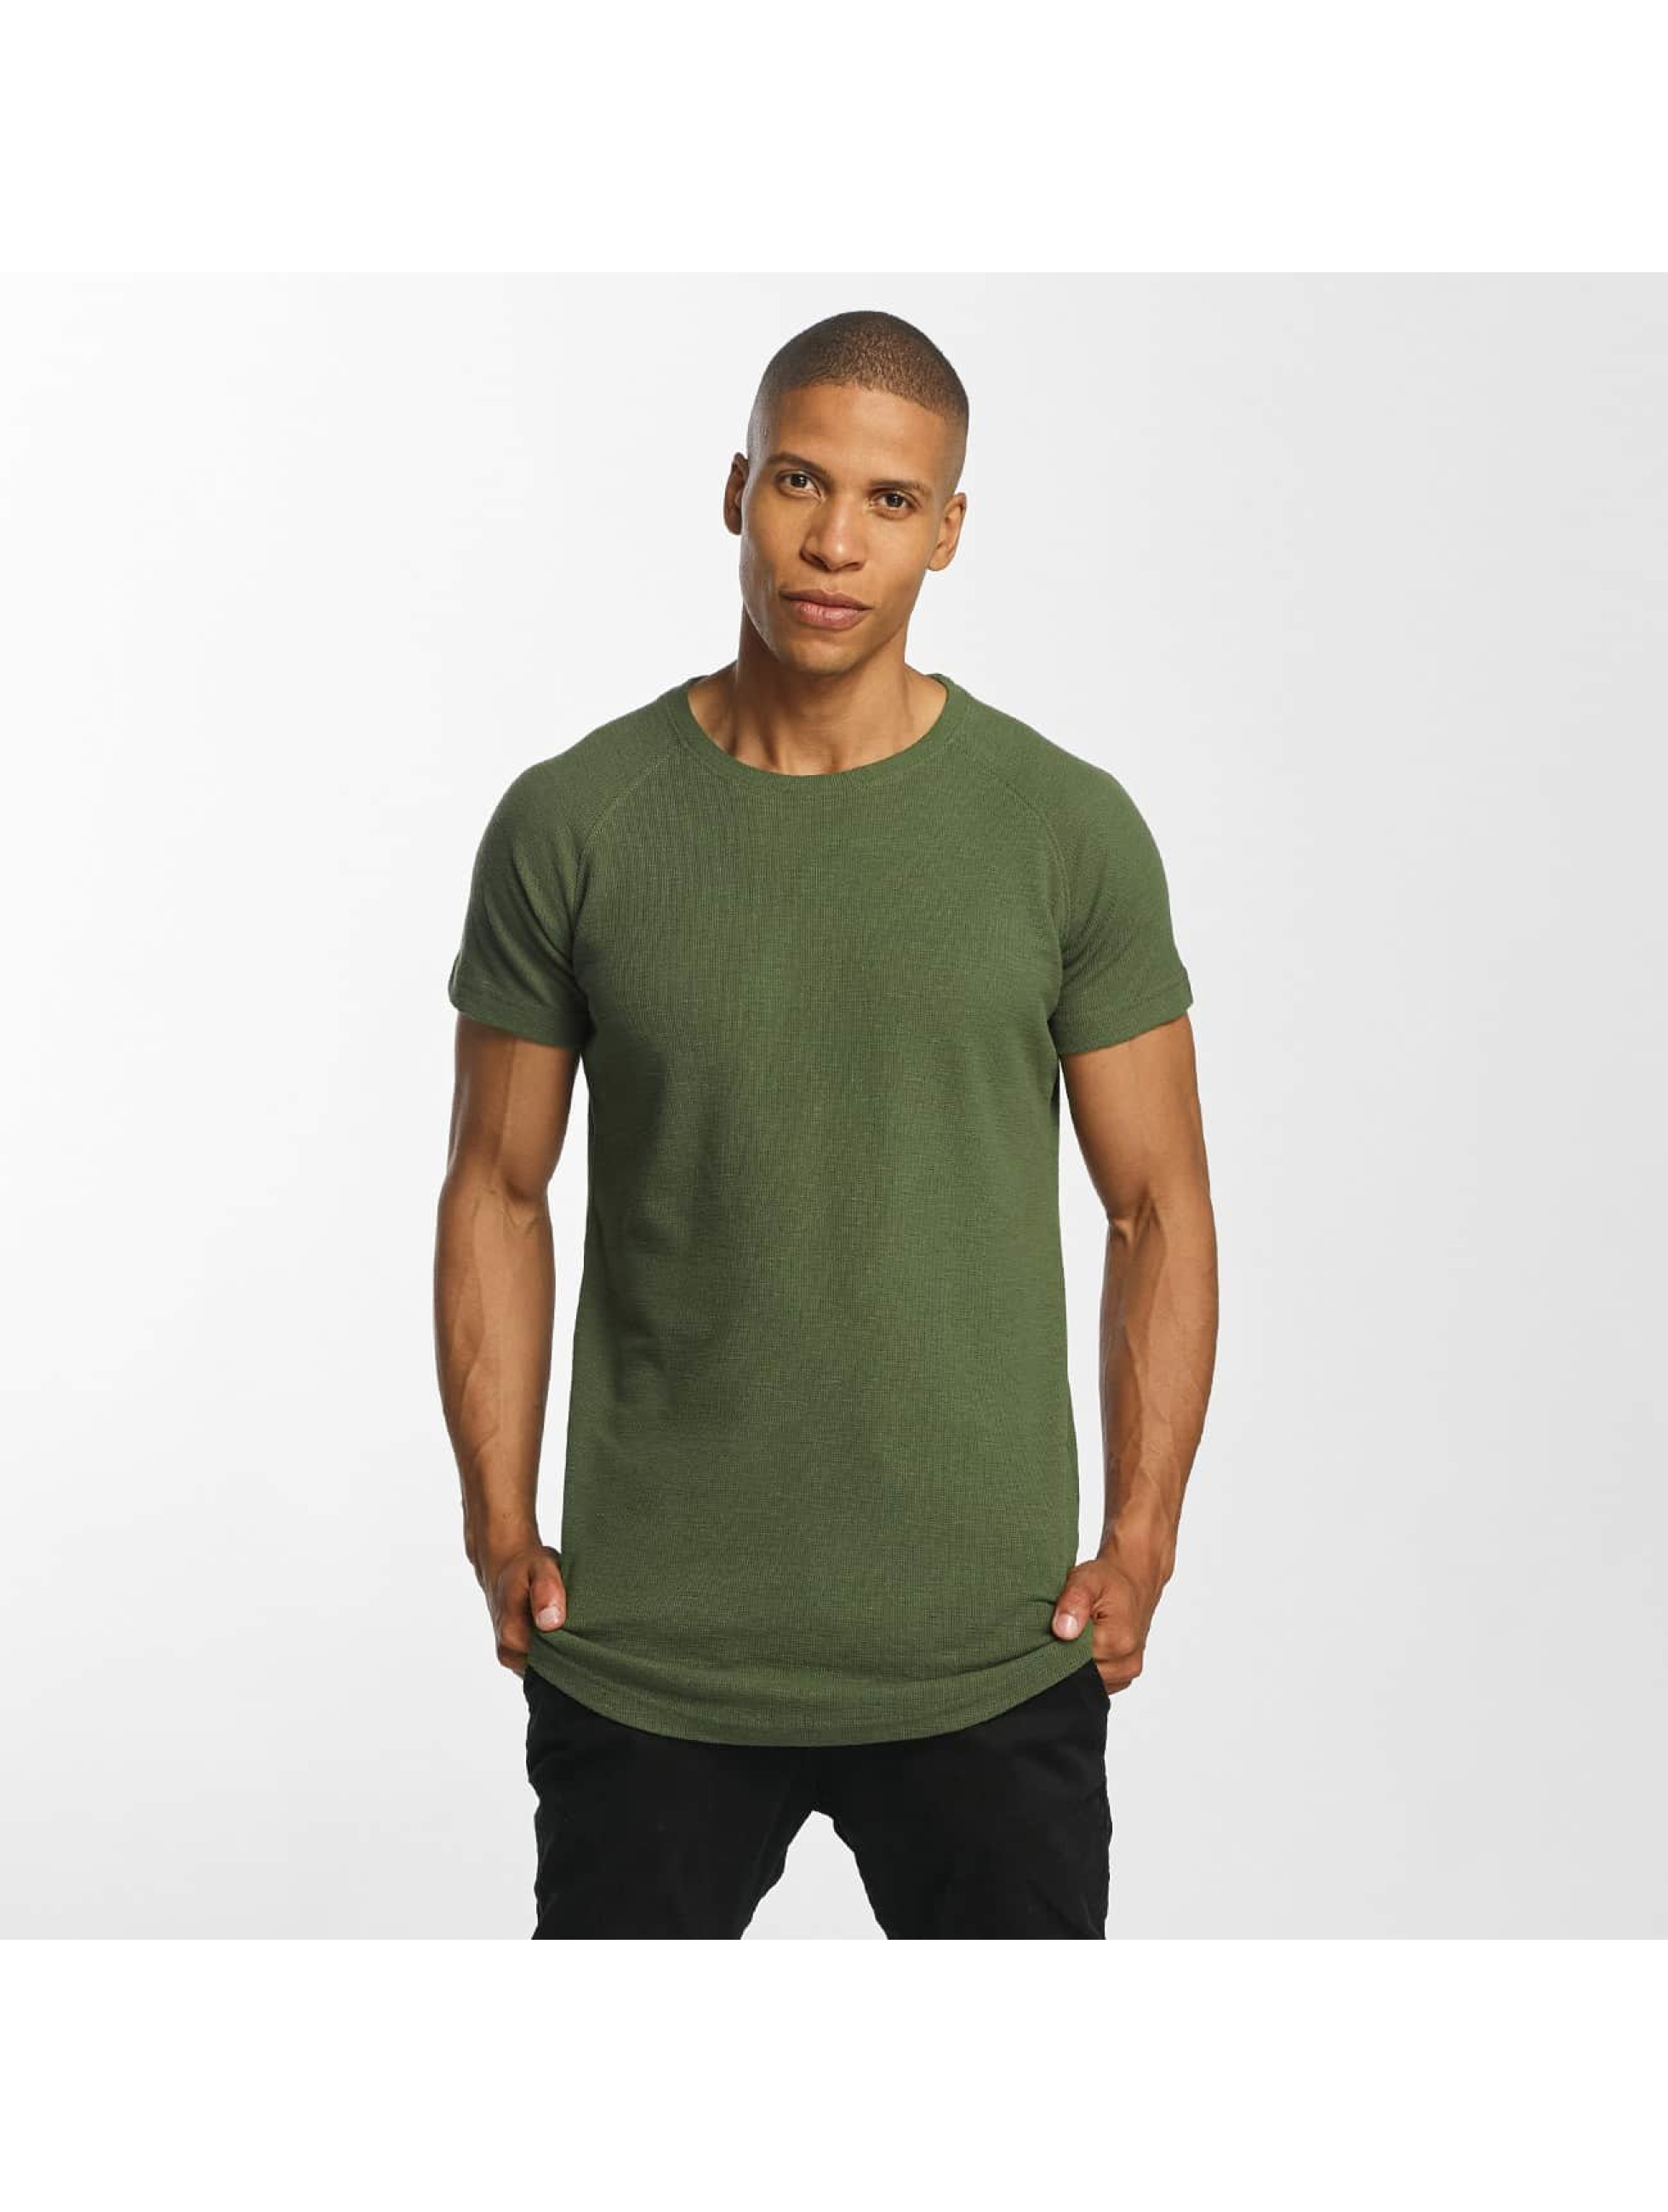 Urban Classics t-shirt Thermal Slub olijfgroen